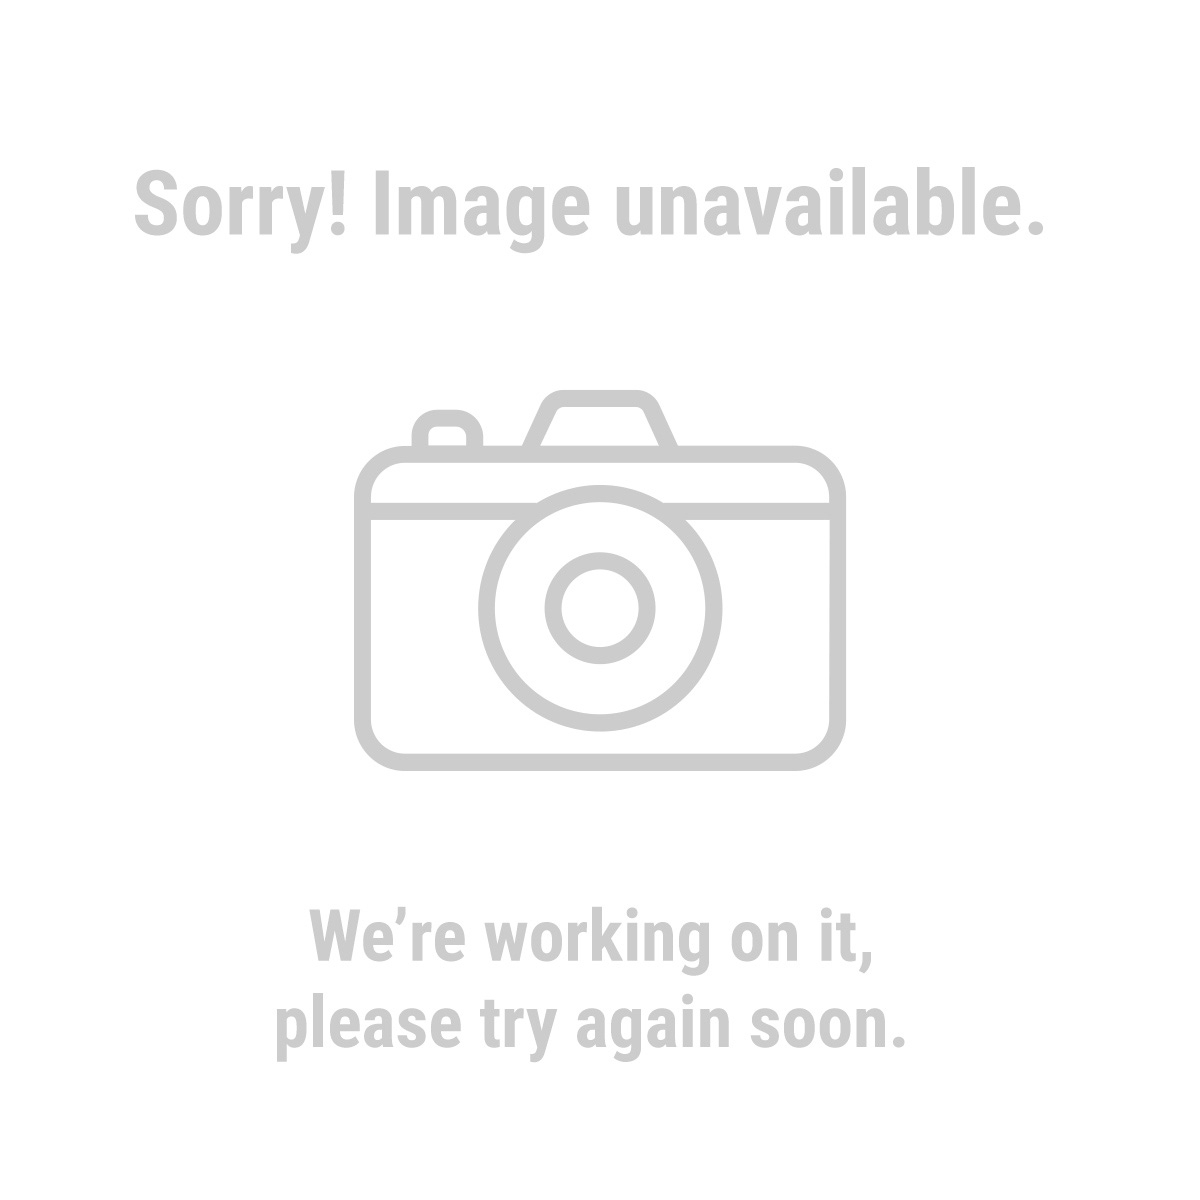 Pittsburgh 46807 12 in. Ratchet Bar Clamp/Spreader